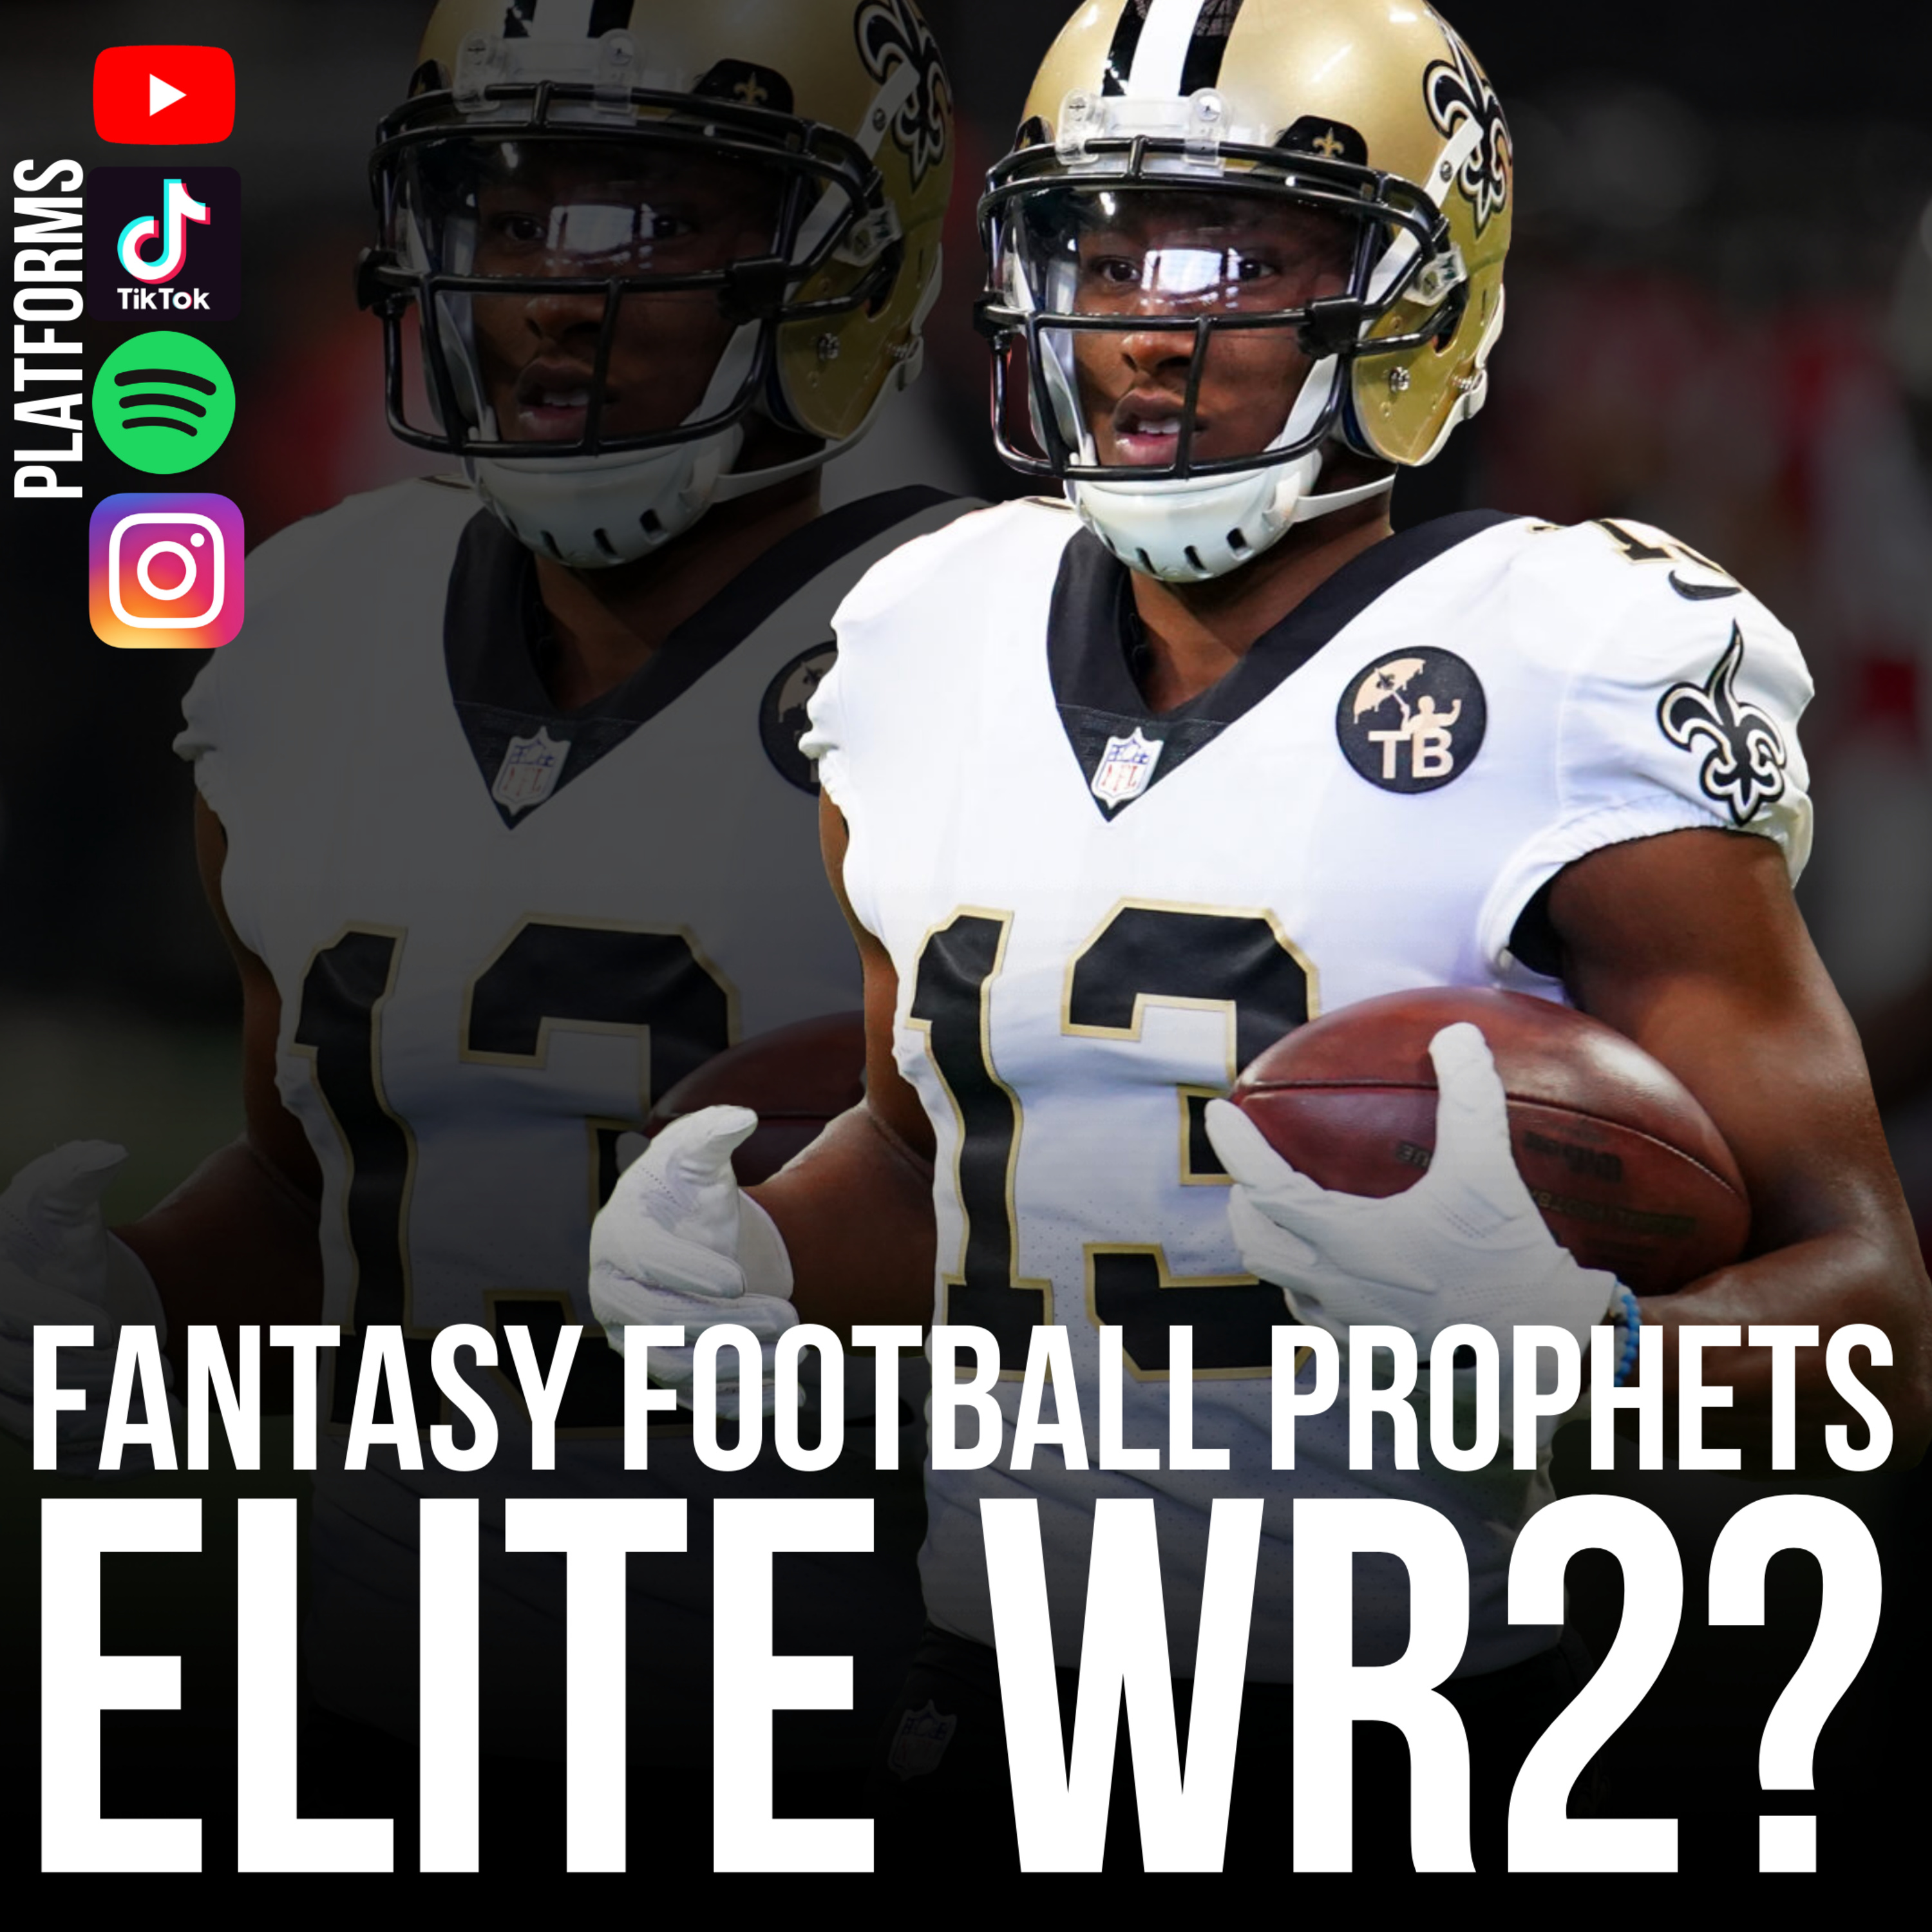 Fantasy Football Who Is The 2nd Best Receiver after Michael Thomas? 2020